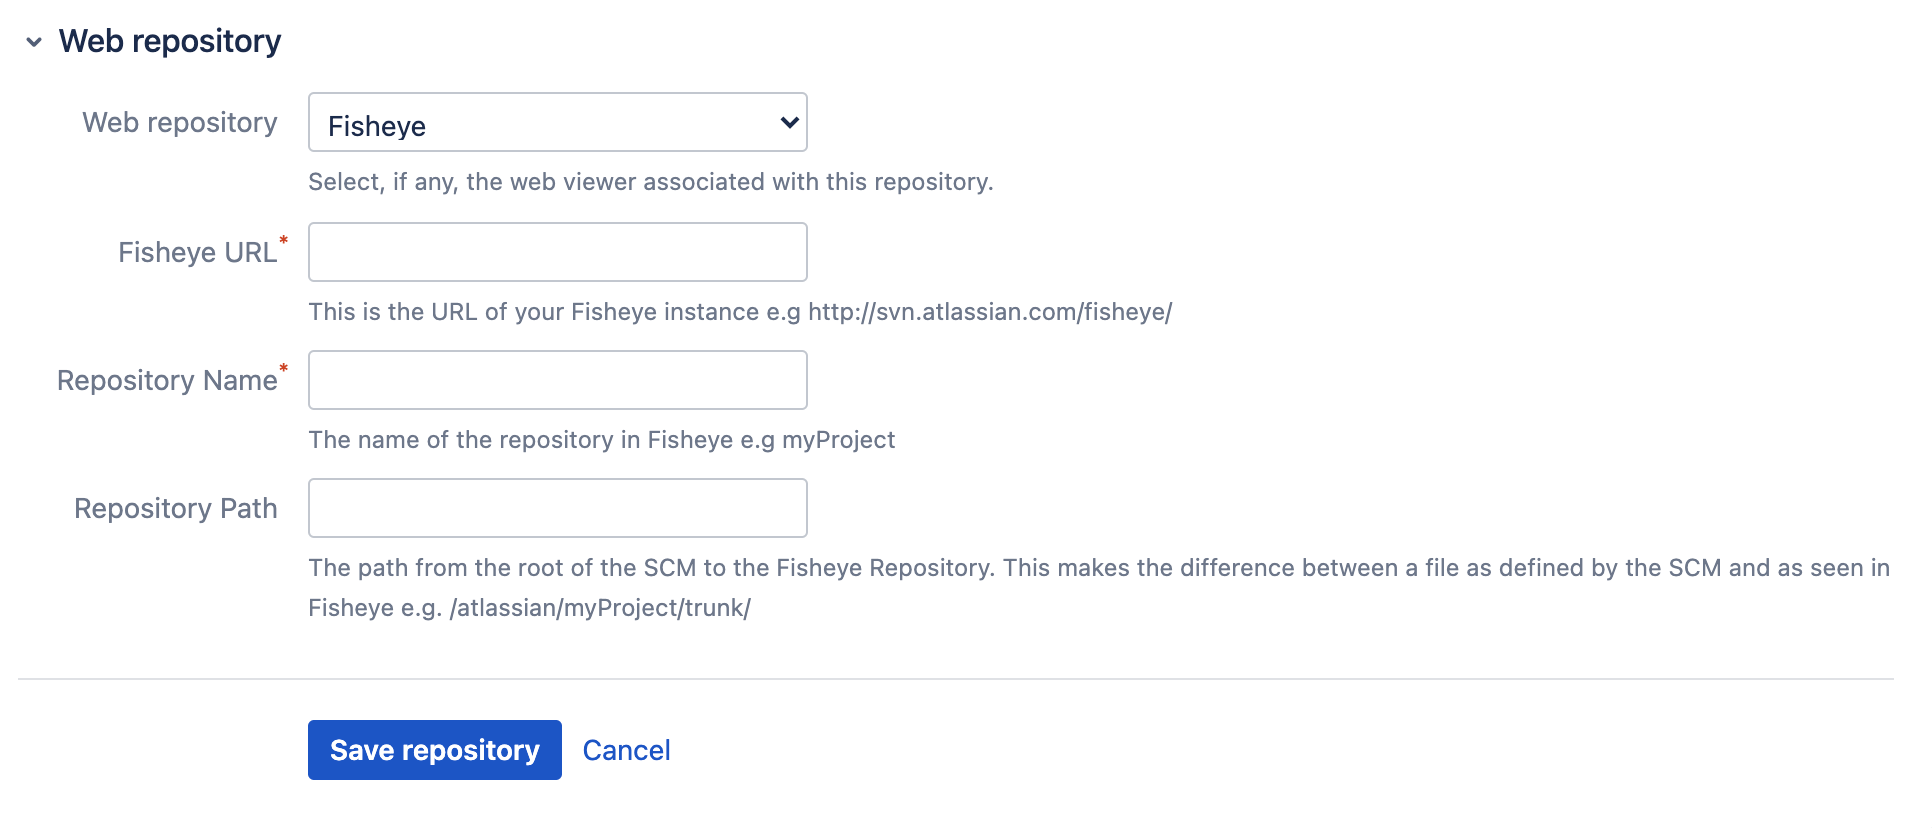 Web repository configuration page